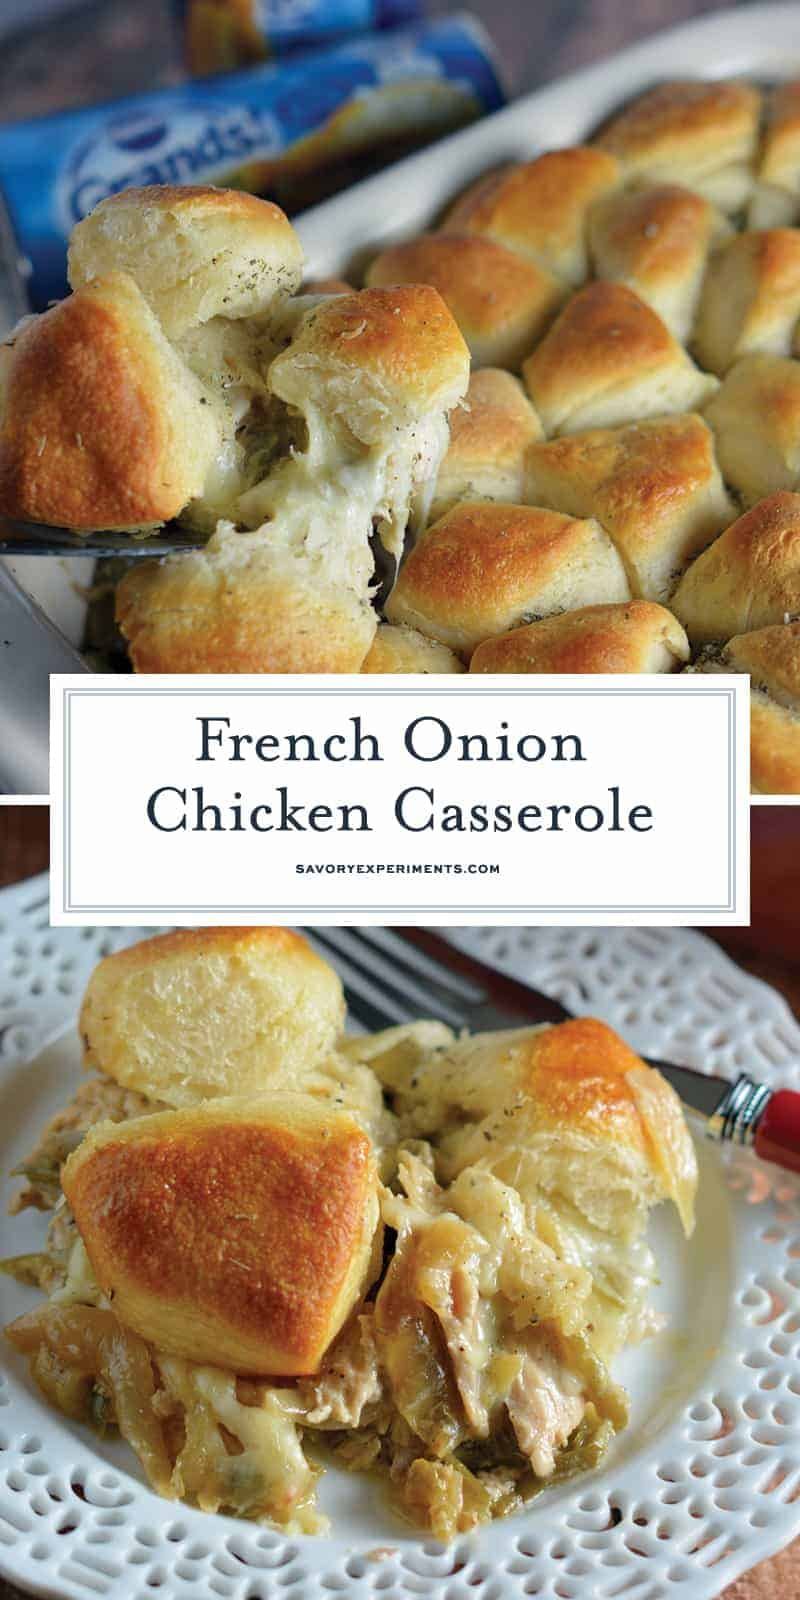 French Onion Chicken Casserole is a one-dish meal that blends chicken, green beans, a creamy sauce, and buttery biscuits. It's 100% delicious! #frenchonion #chickencasserole www.savoryexperiments.com